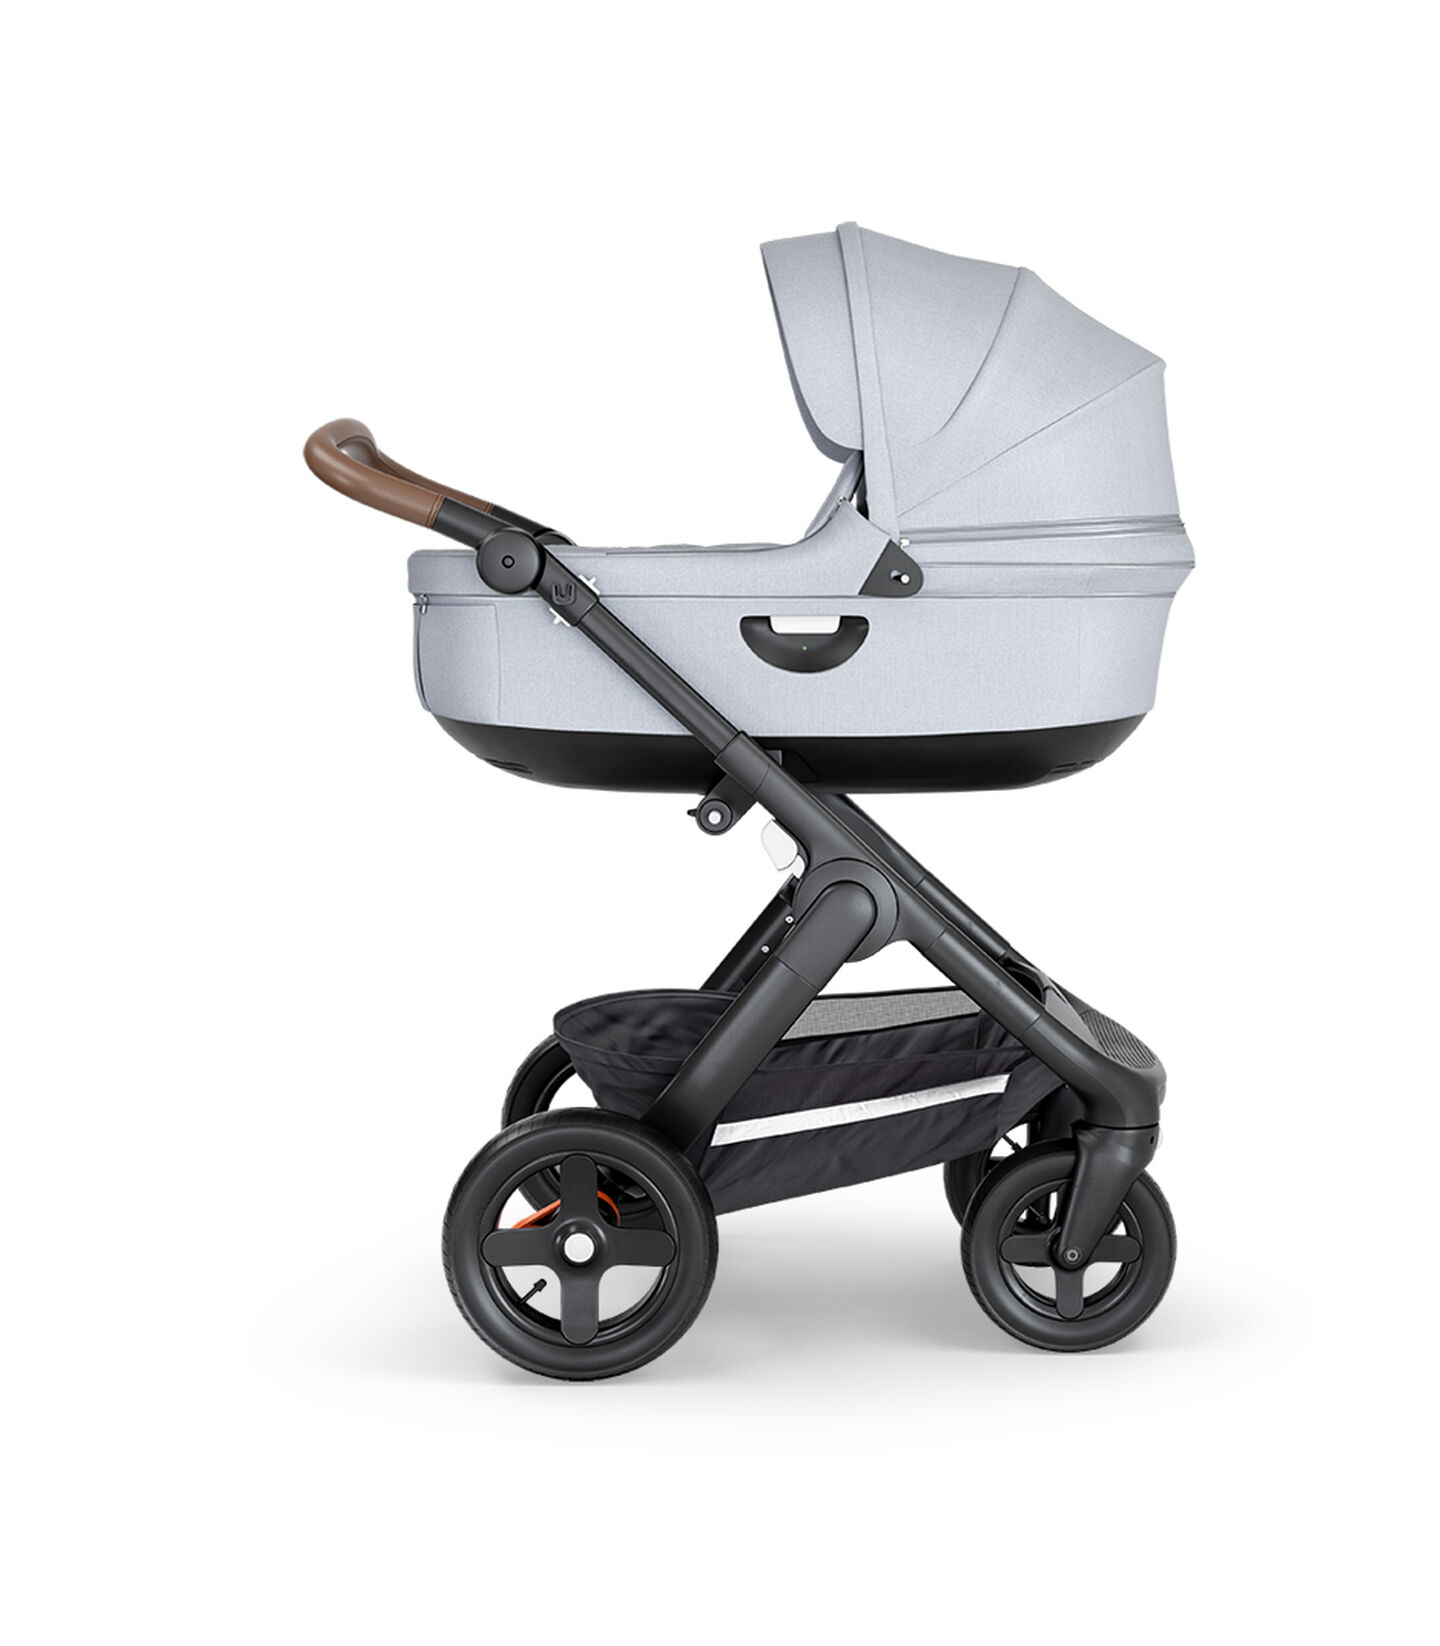 Stokke® Trailz™ with Black Chassis, Brown Leatherette and Terrain Wheels. Stokke® Stroller Carry Cot, Grey Melange.